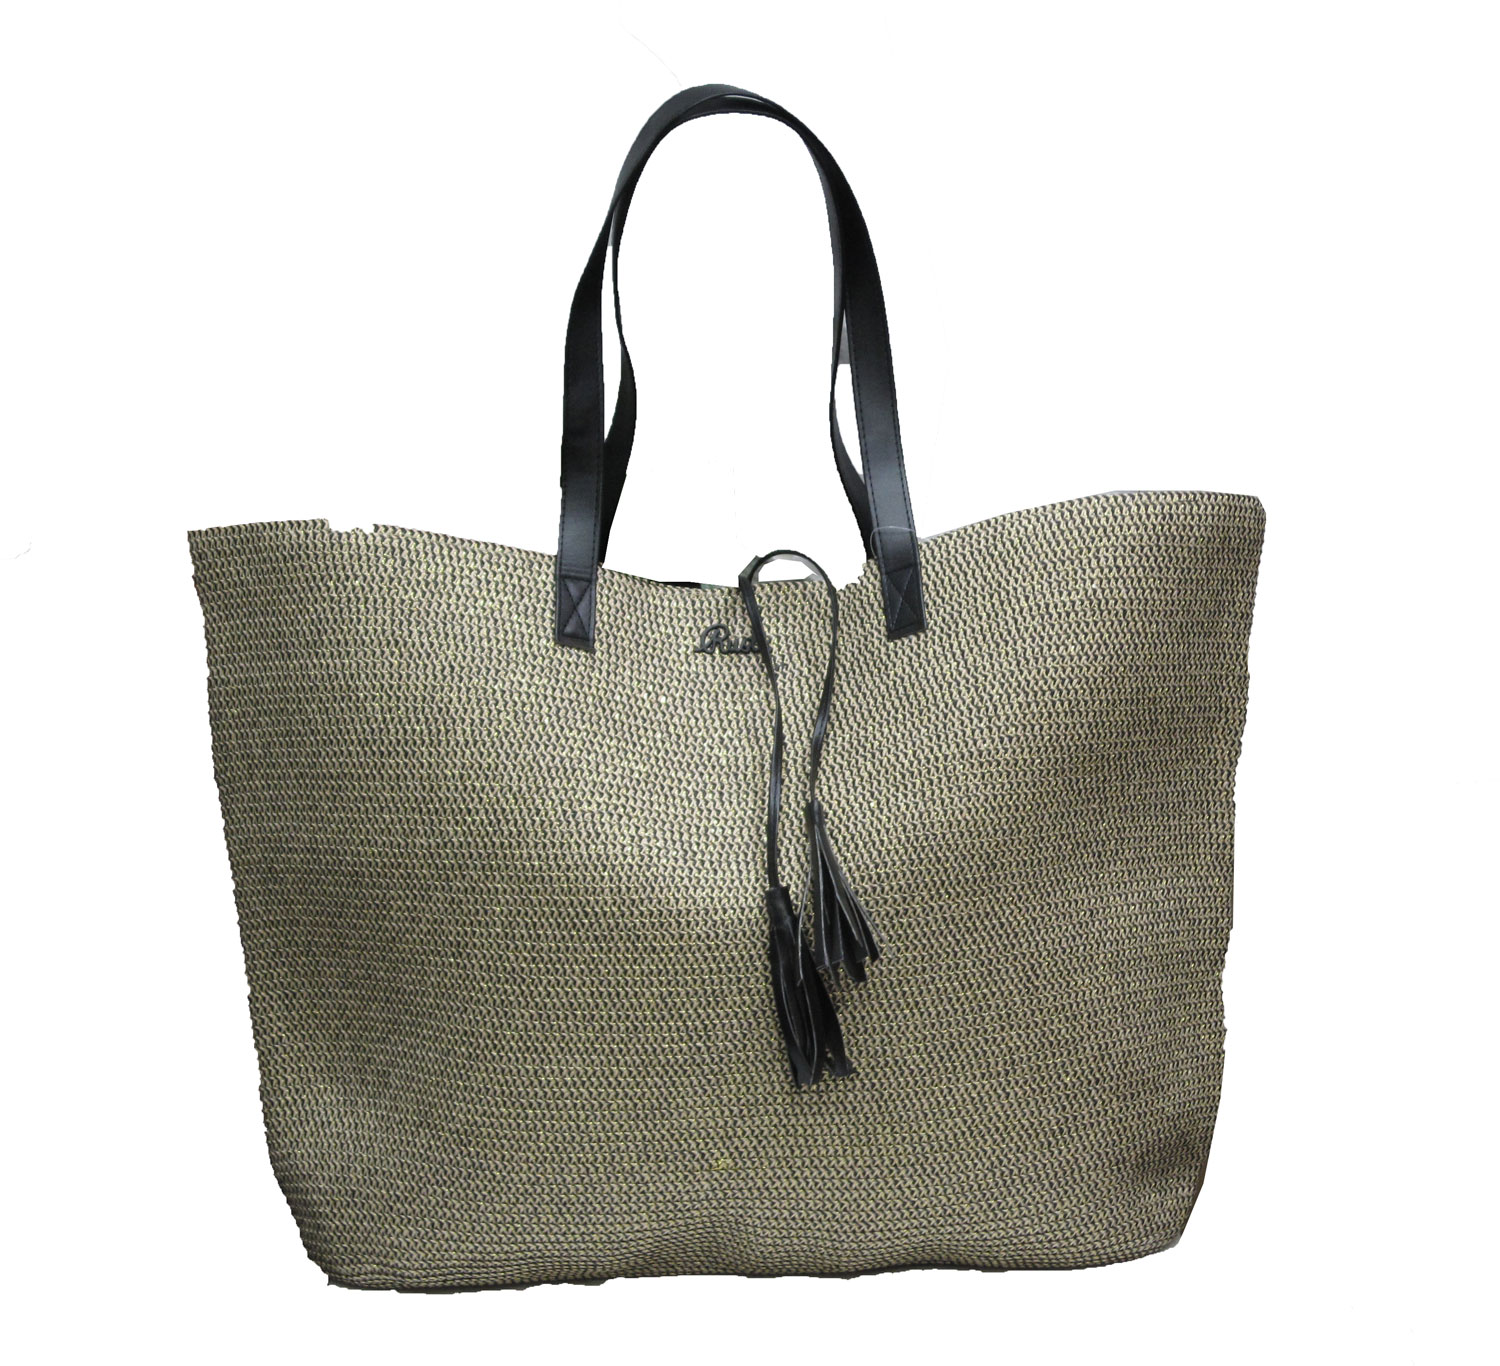 Sum13 RUSTY SHIMMER BEACH BAG - RUSTY S13/14 : Womens-Bags : Blitz ...